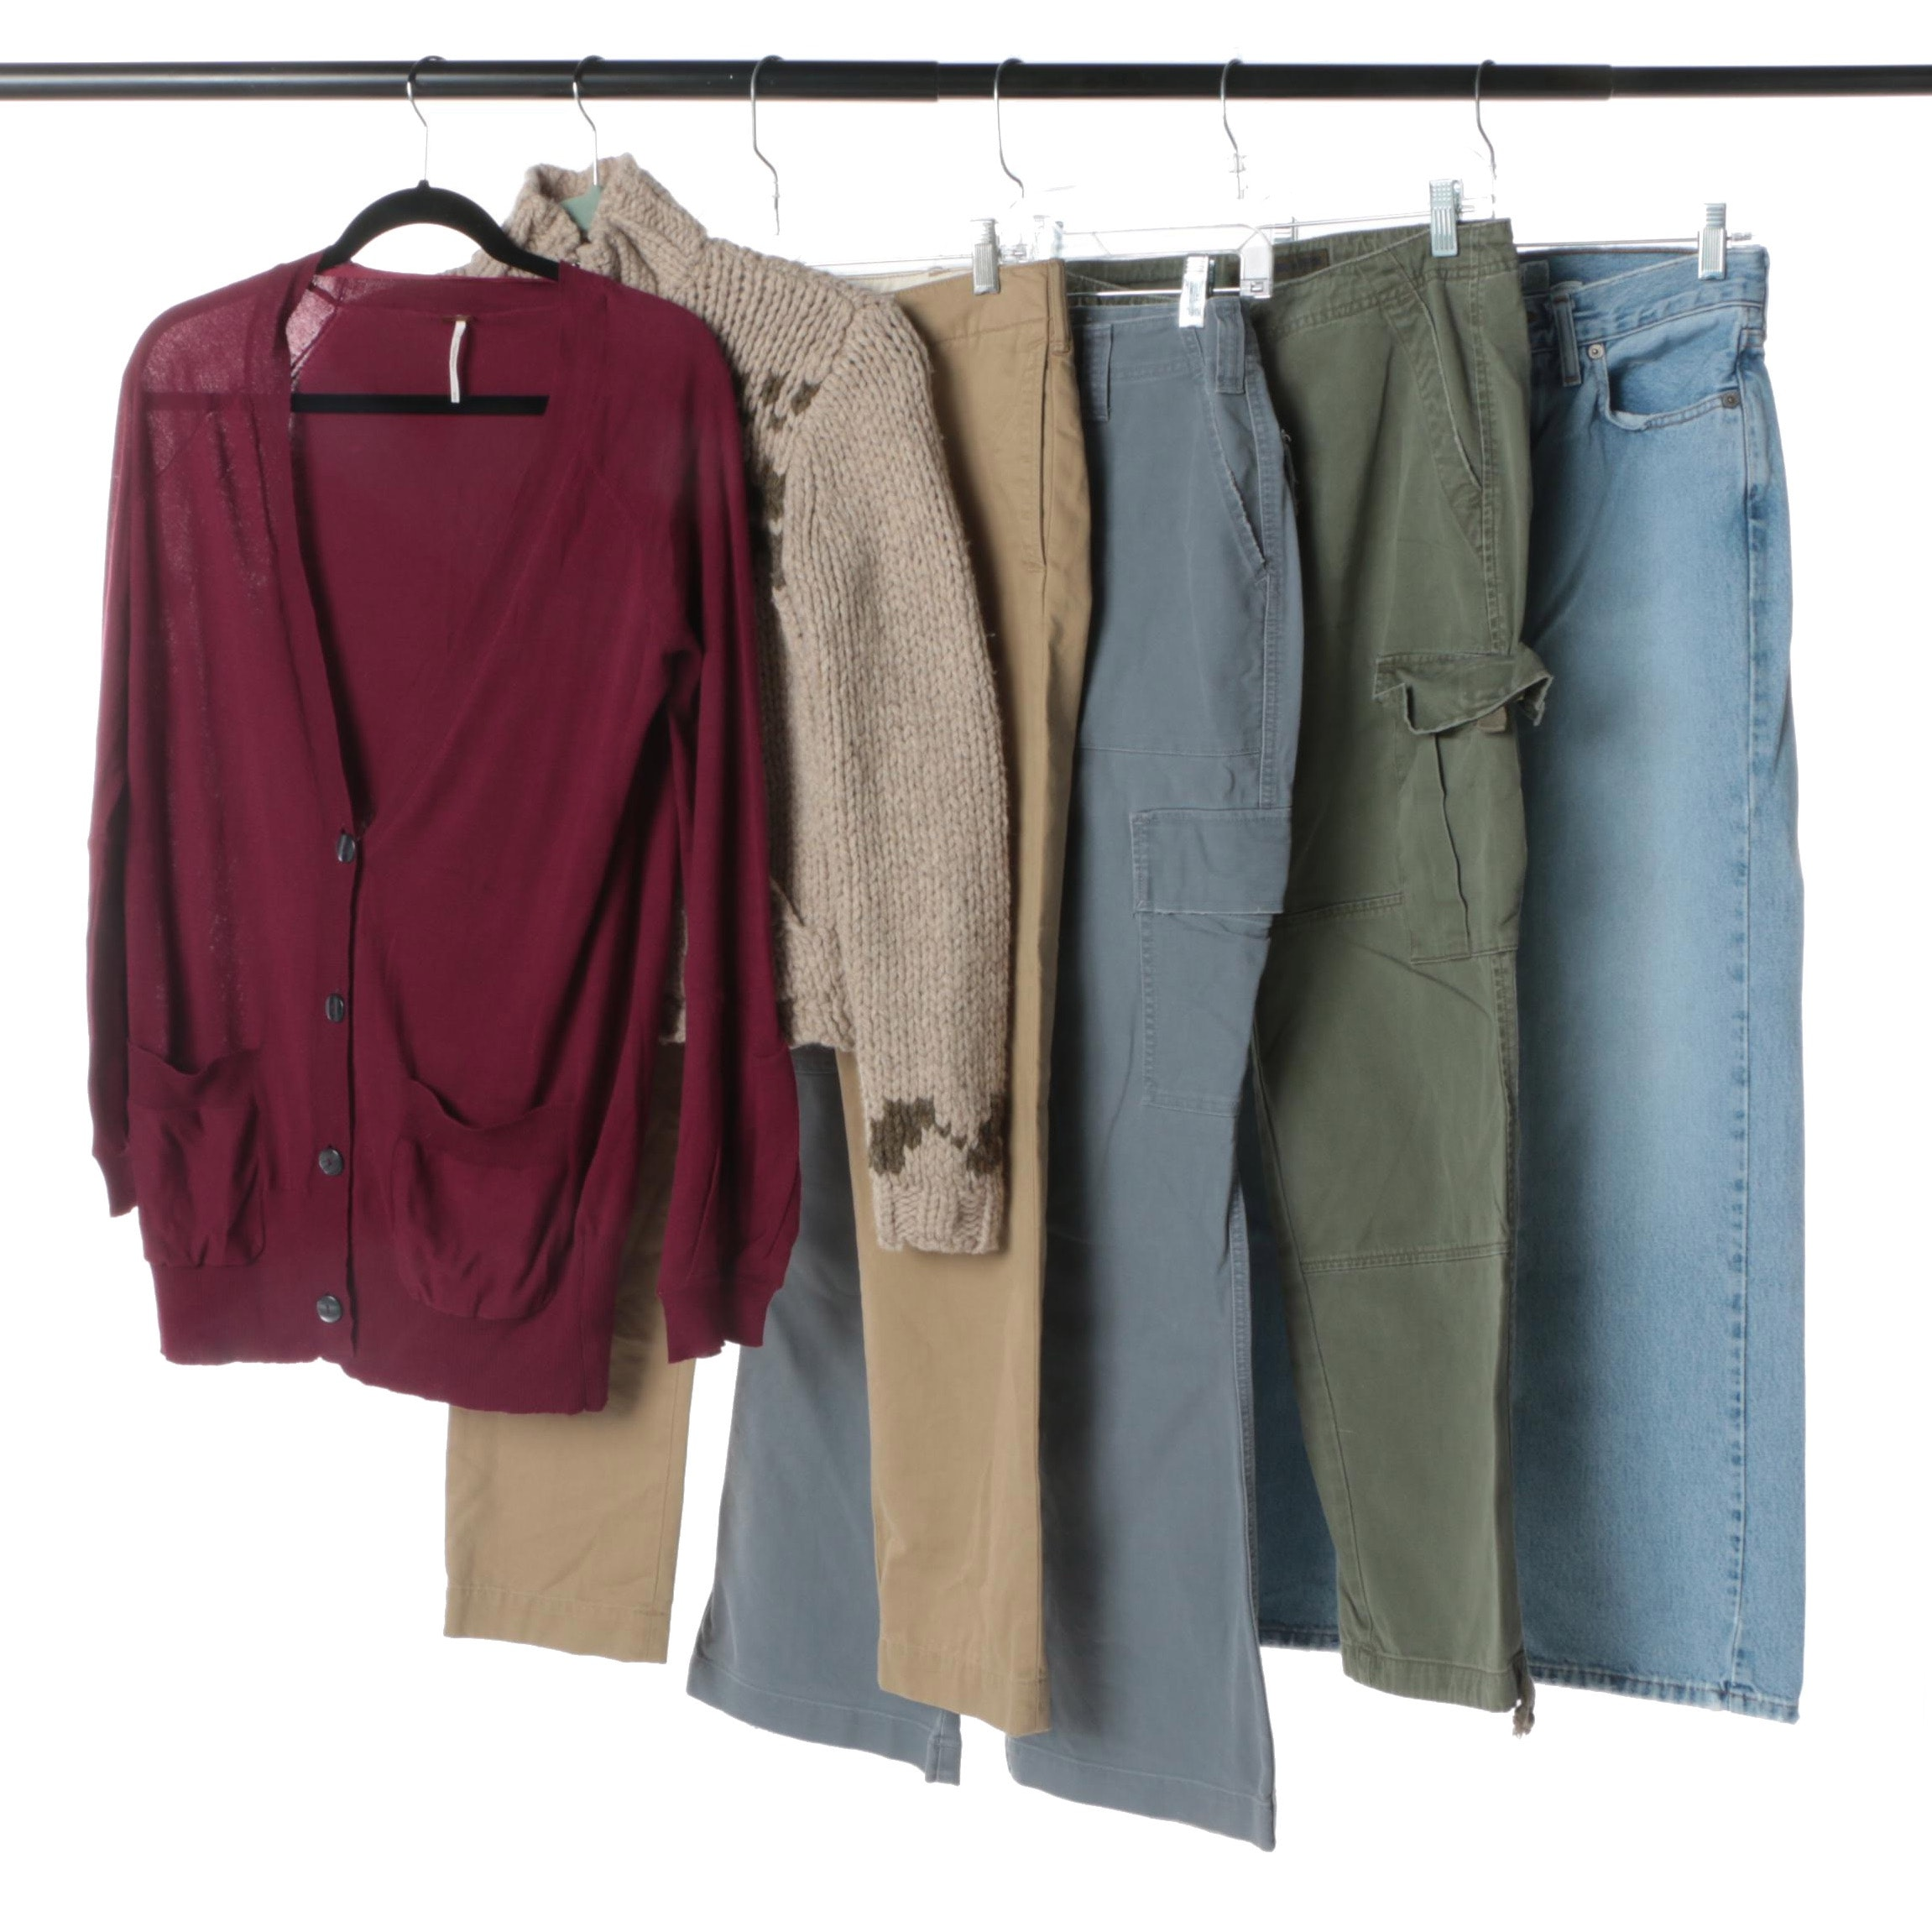 Women's Clothing Separates Including Abercrombie & Fitch and Free People